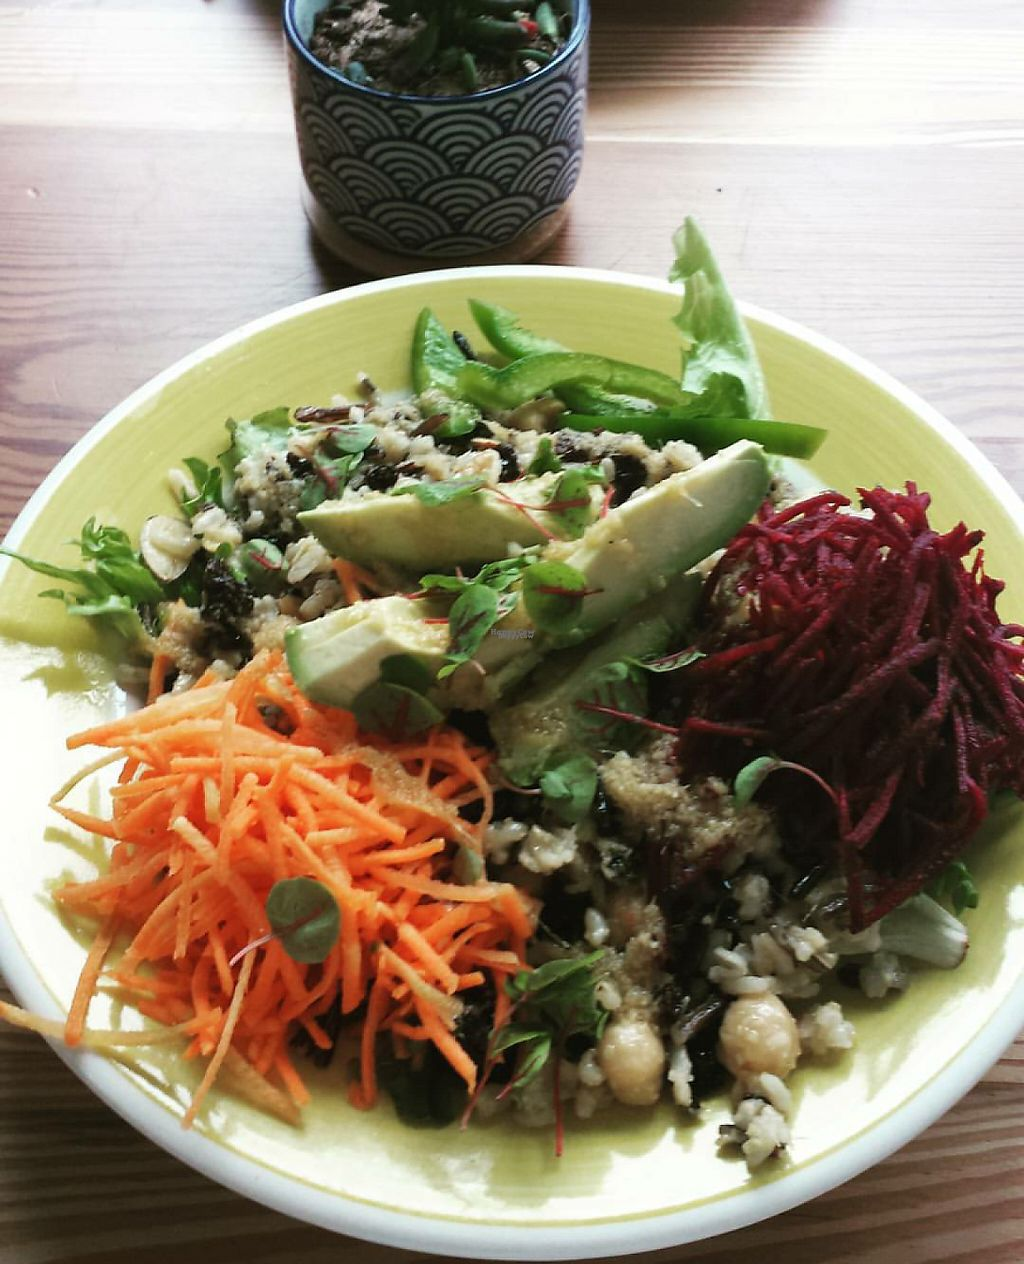 "Photo of The Daily Beet  by <a href=""/members/profile/vegbaker"">vegbaker</a> <br/>Rainbow bowl with wild rice instead of quinoa - So good! <br/> April 29, 2017  - <a href='/contact/abuse/image/90924/253734'>Report</a>"